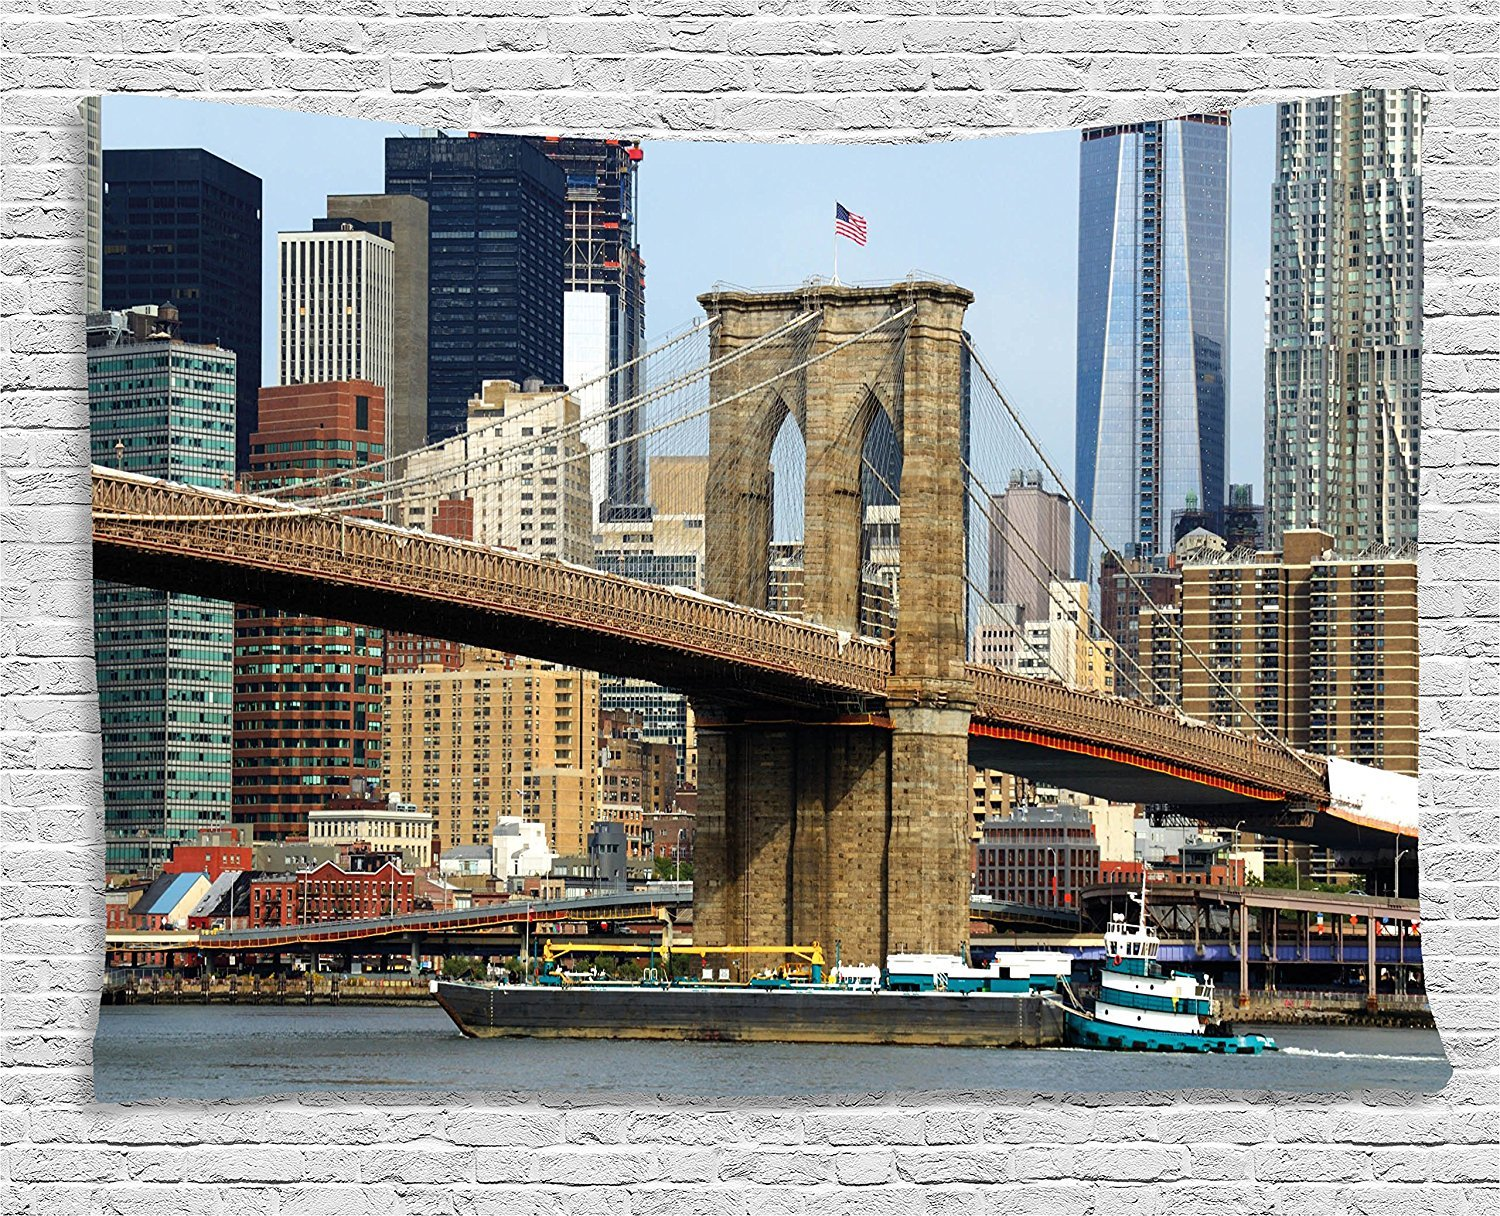 asddcdfdd Urban Tapestry, Skyline of Brooklyn New York USA Cityscape Bridge Buildings and River Coastal Scenery, Wall Hanging for Bedroom Living Room Dorm, 60 W X 40 L Inches, Multicolor